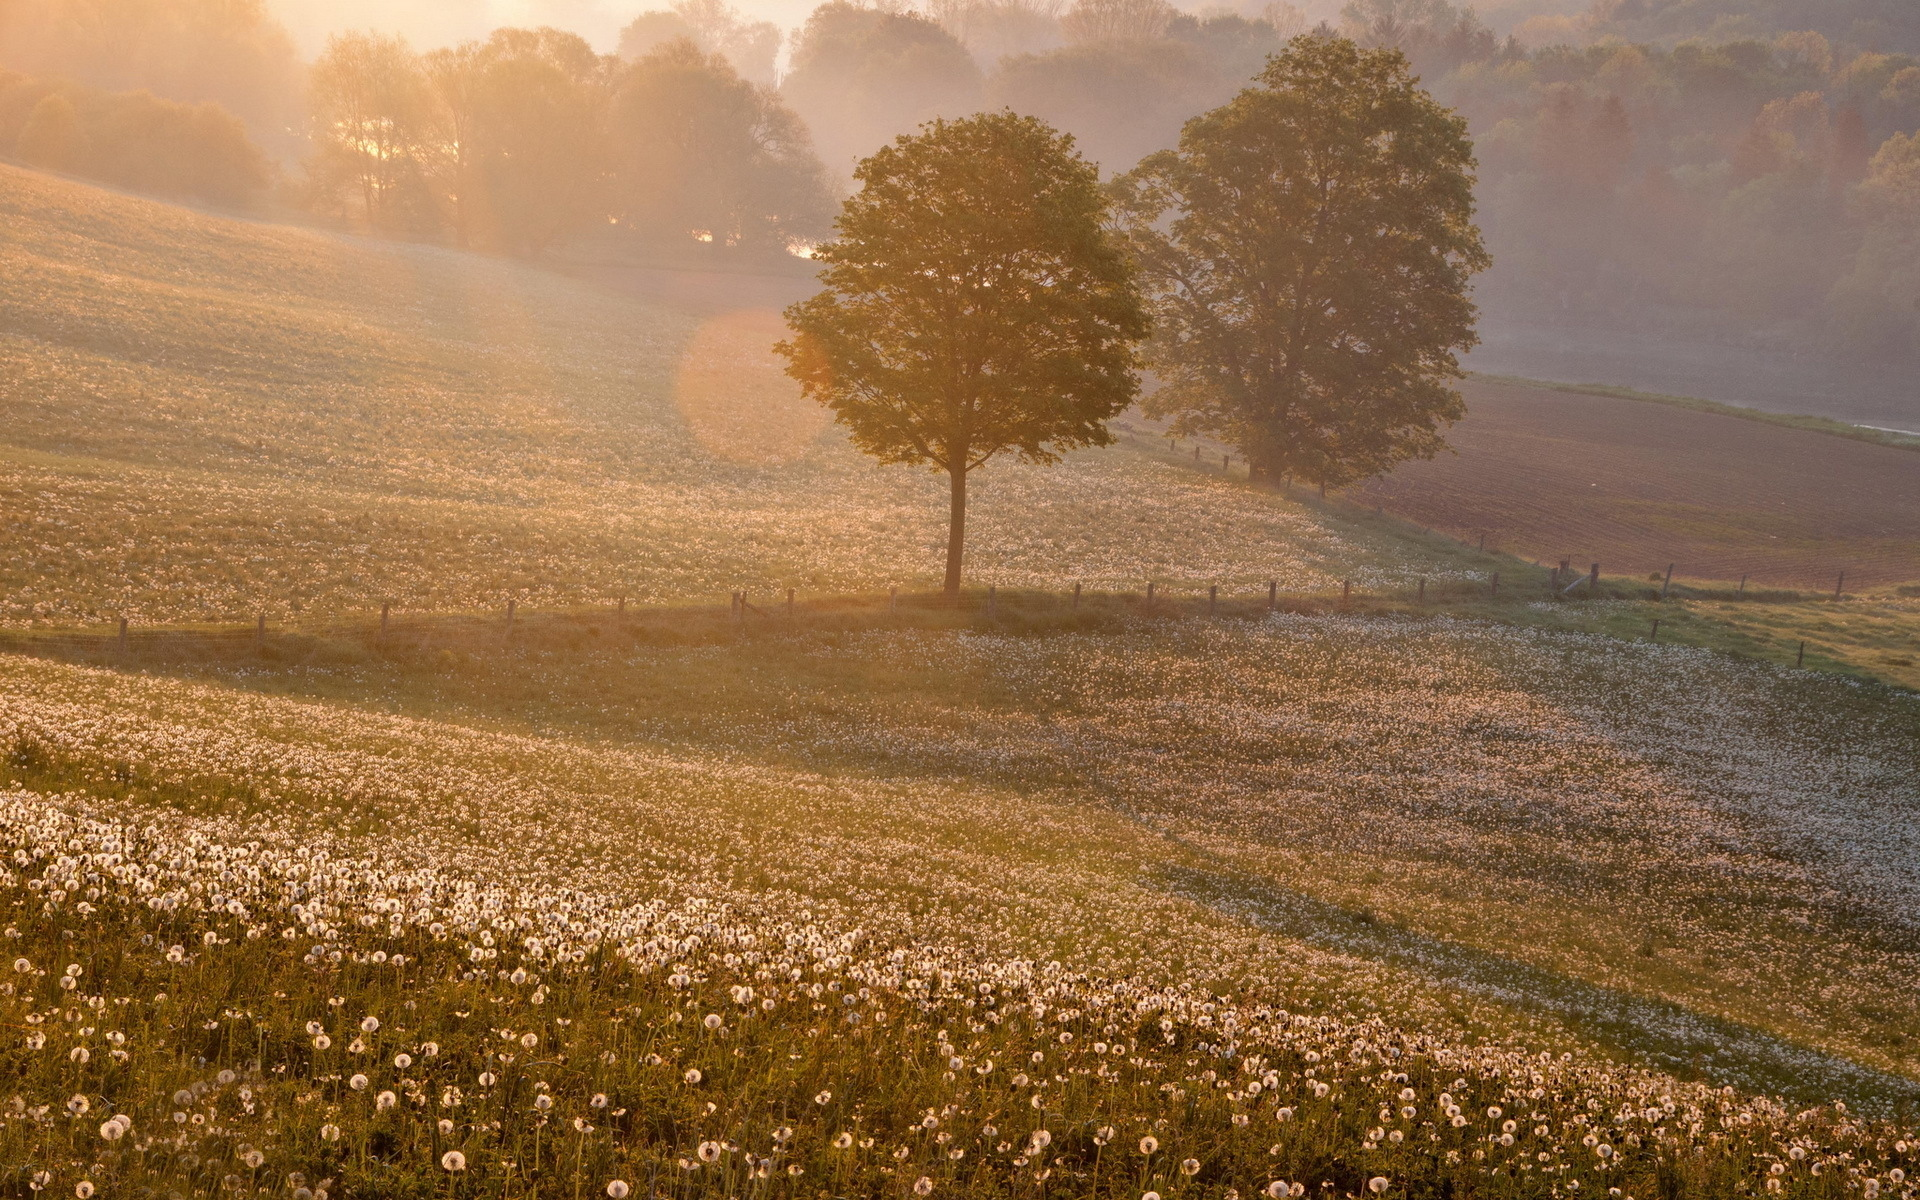 Earth - Landscape  - Scenic - Field - Flower - Flowers - Tree - Fog - Mist - Morning - Sunrise - Forest Wallpaper